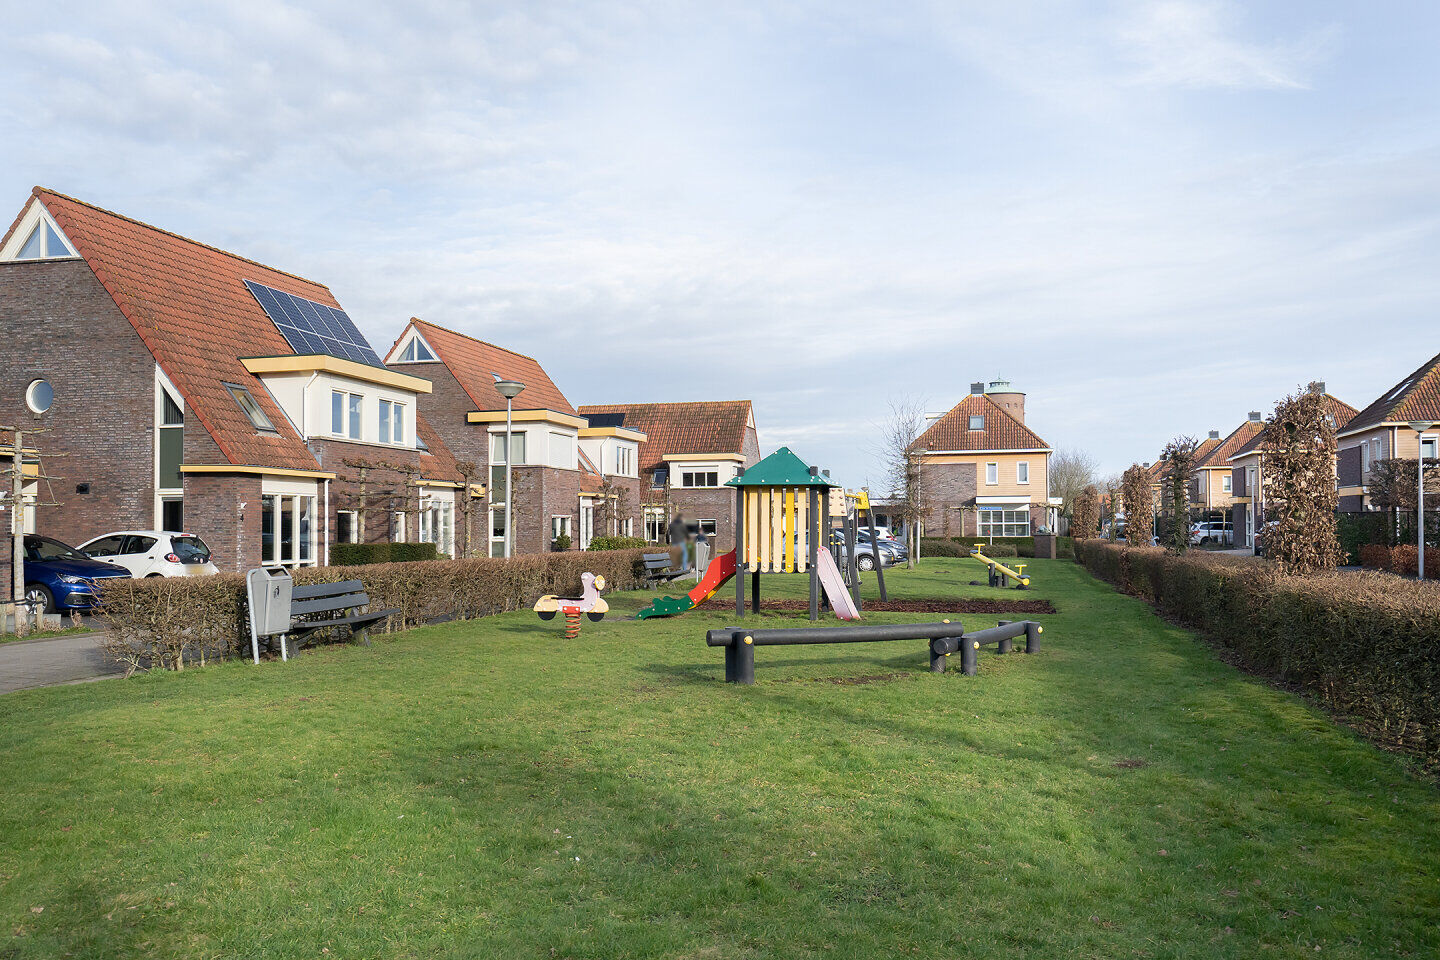 37157-jan_de_preestraat_1-steenbergen-558546414